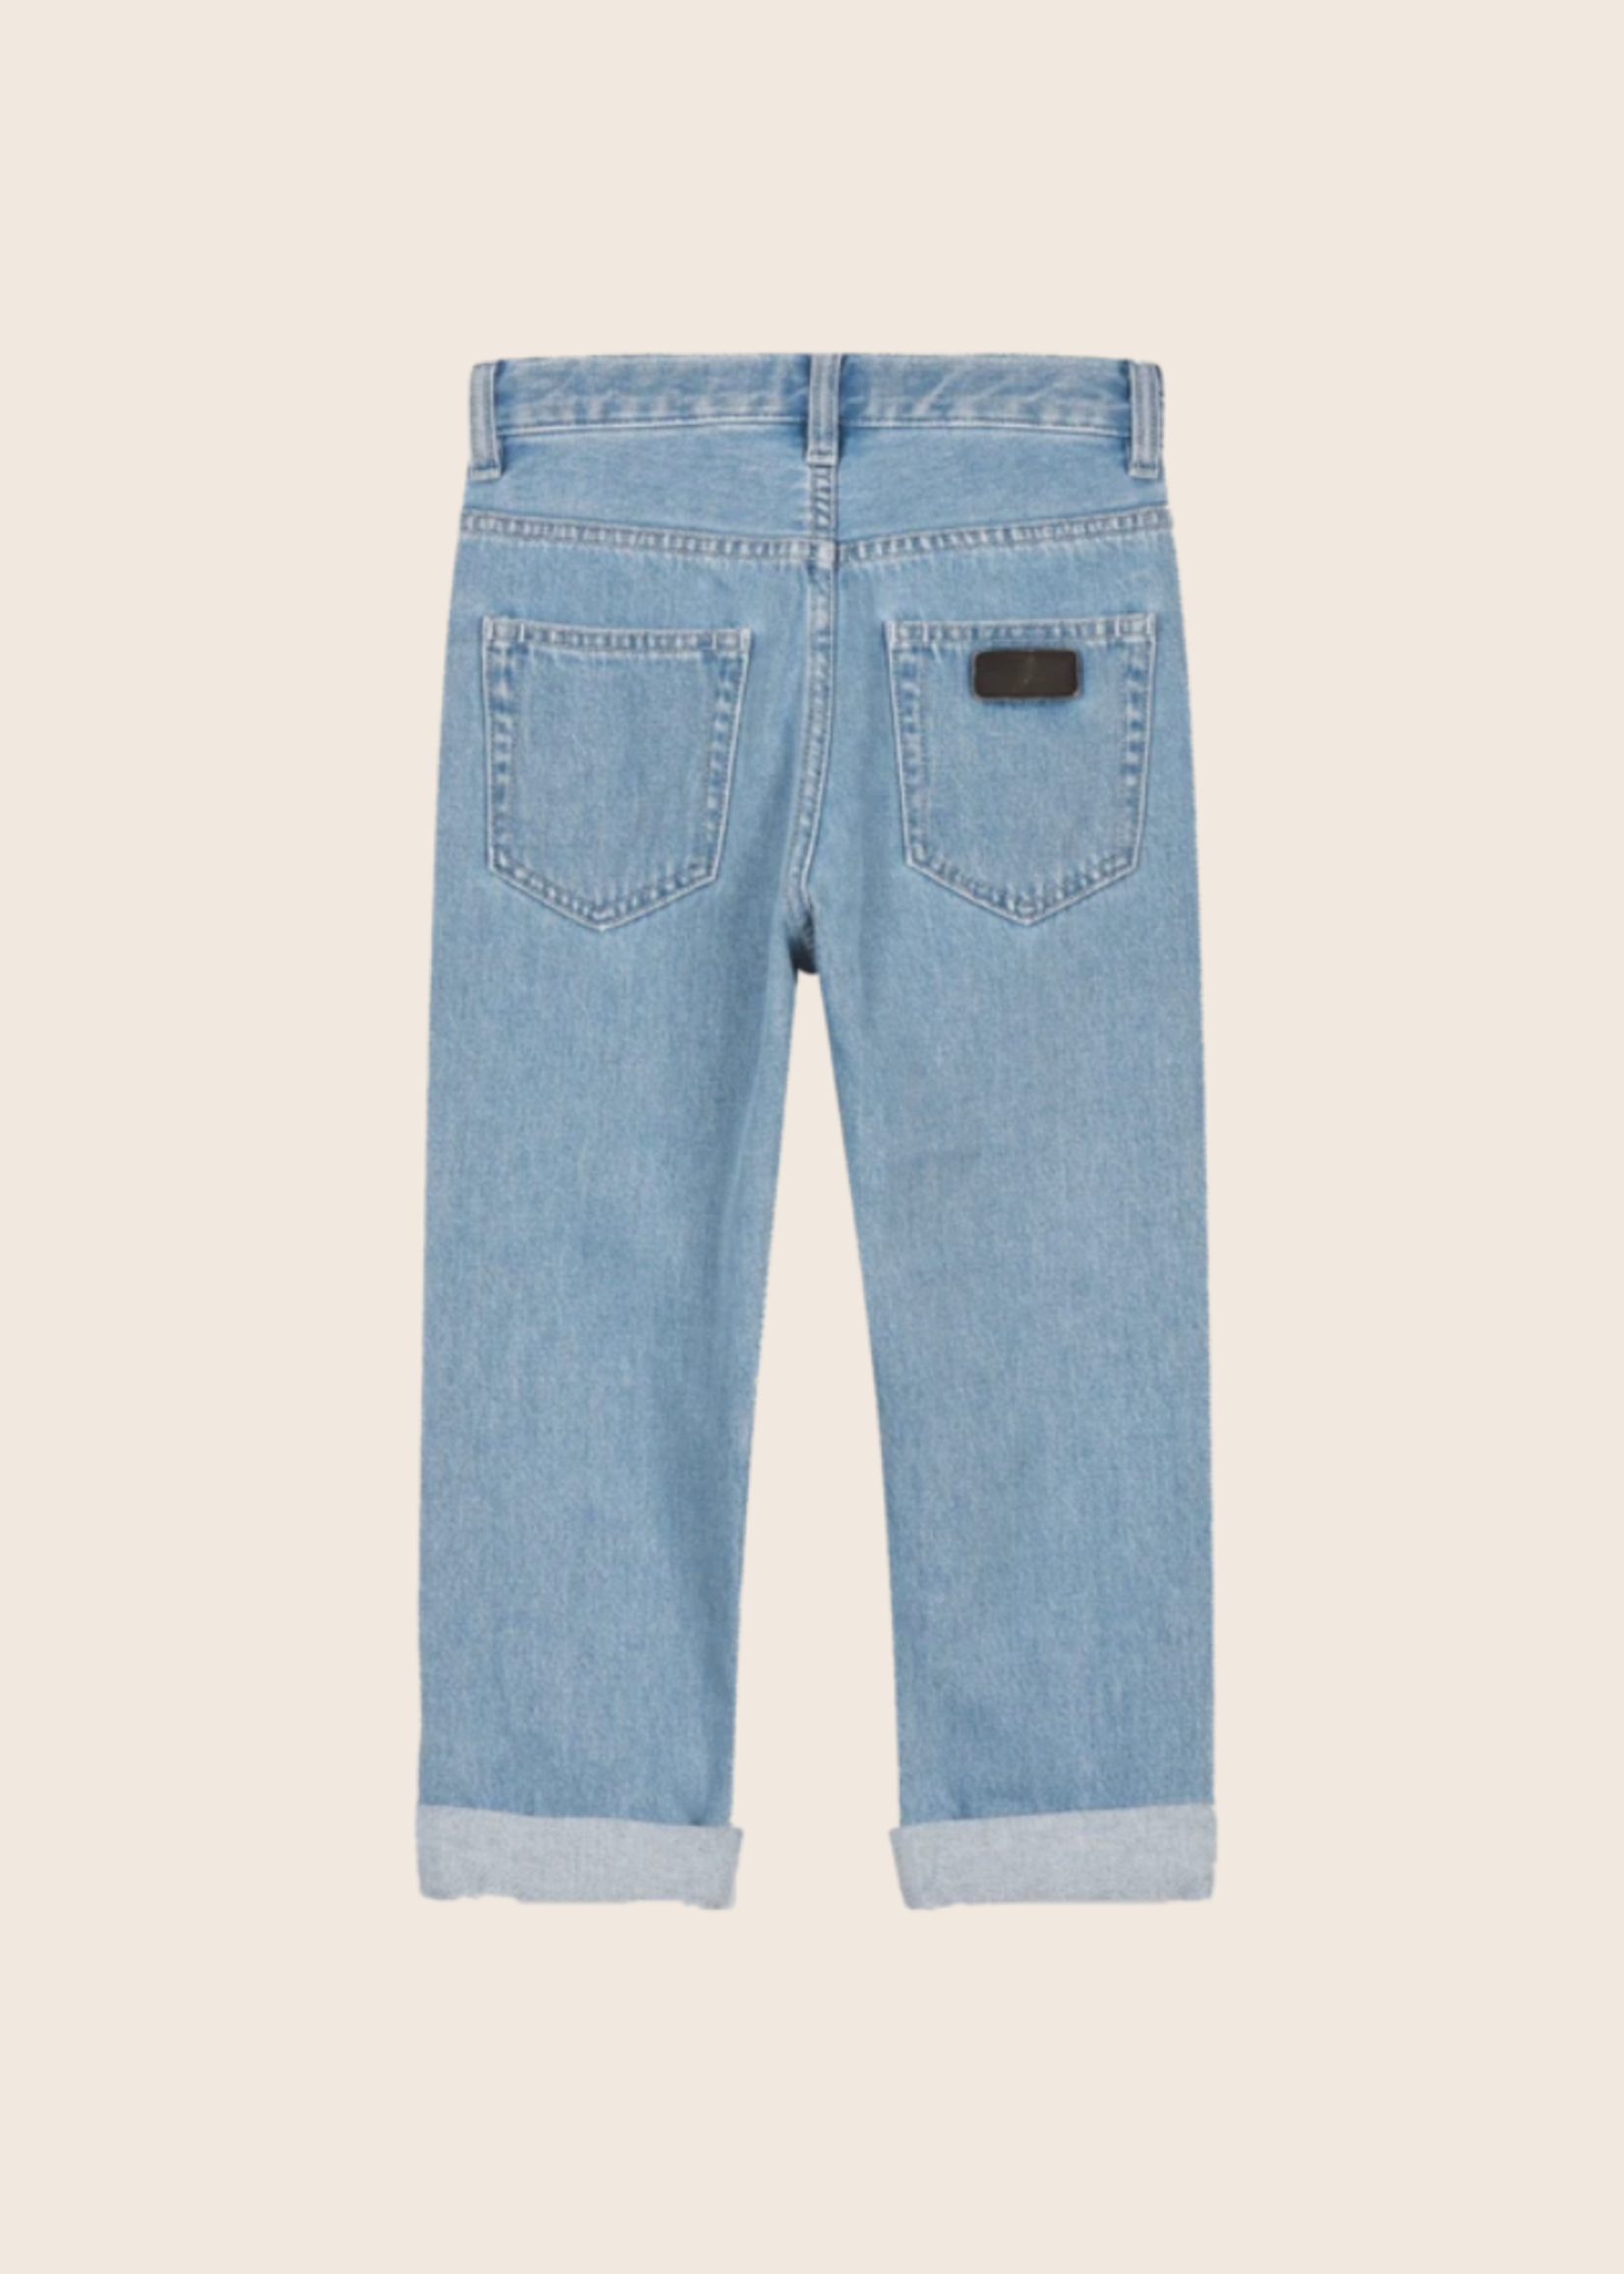 FINGER IN THE NOSE OLLIBIS Bleached Blue - 5 Pockets Tapered Fit Jeans